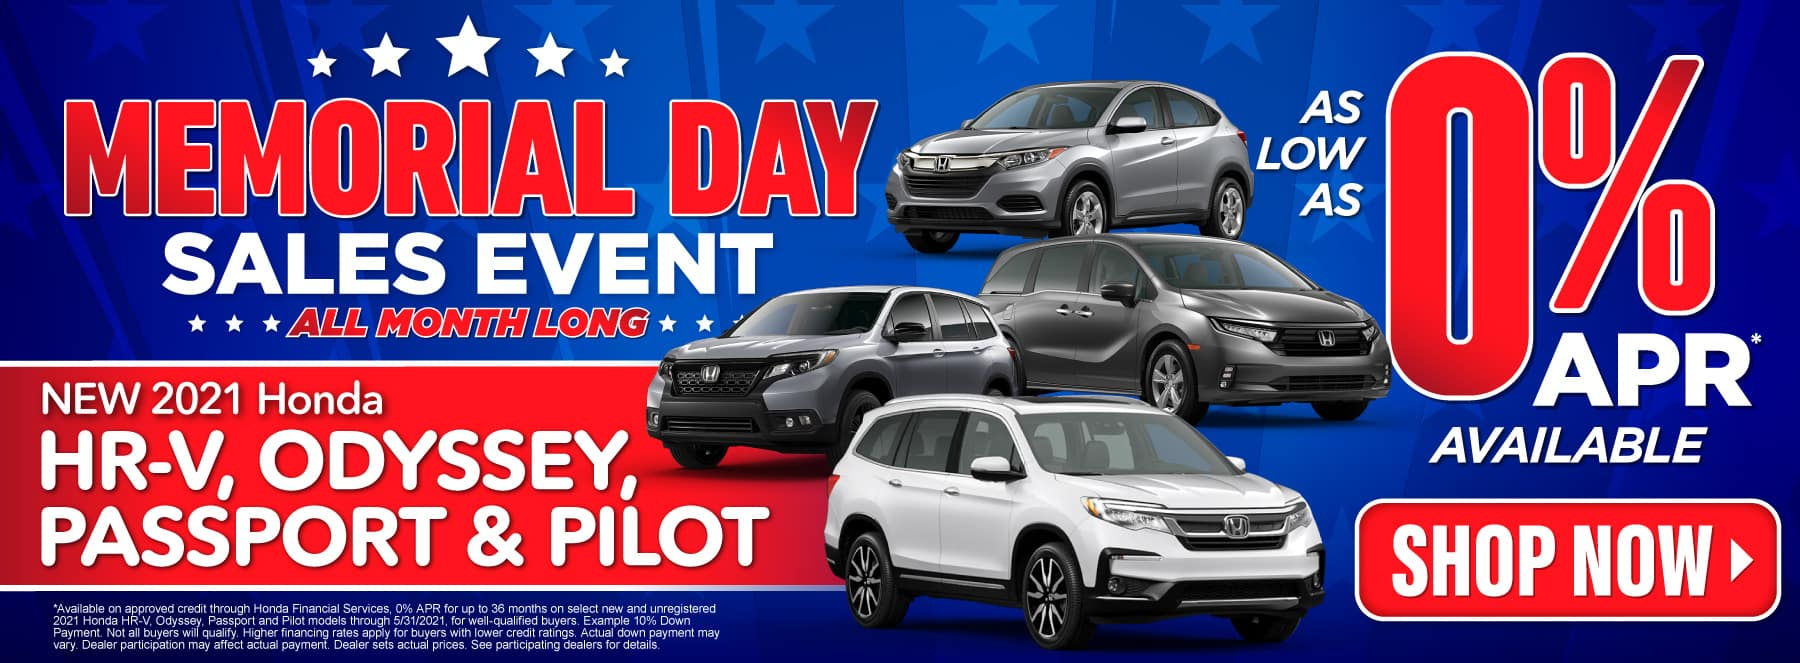 0% APR on new HR-V, Odyssey, Passport and Pilot - Shop Now